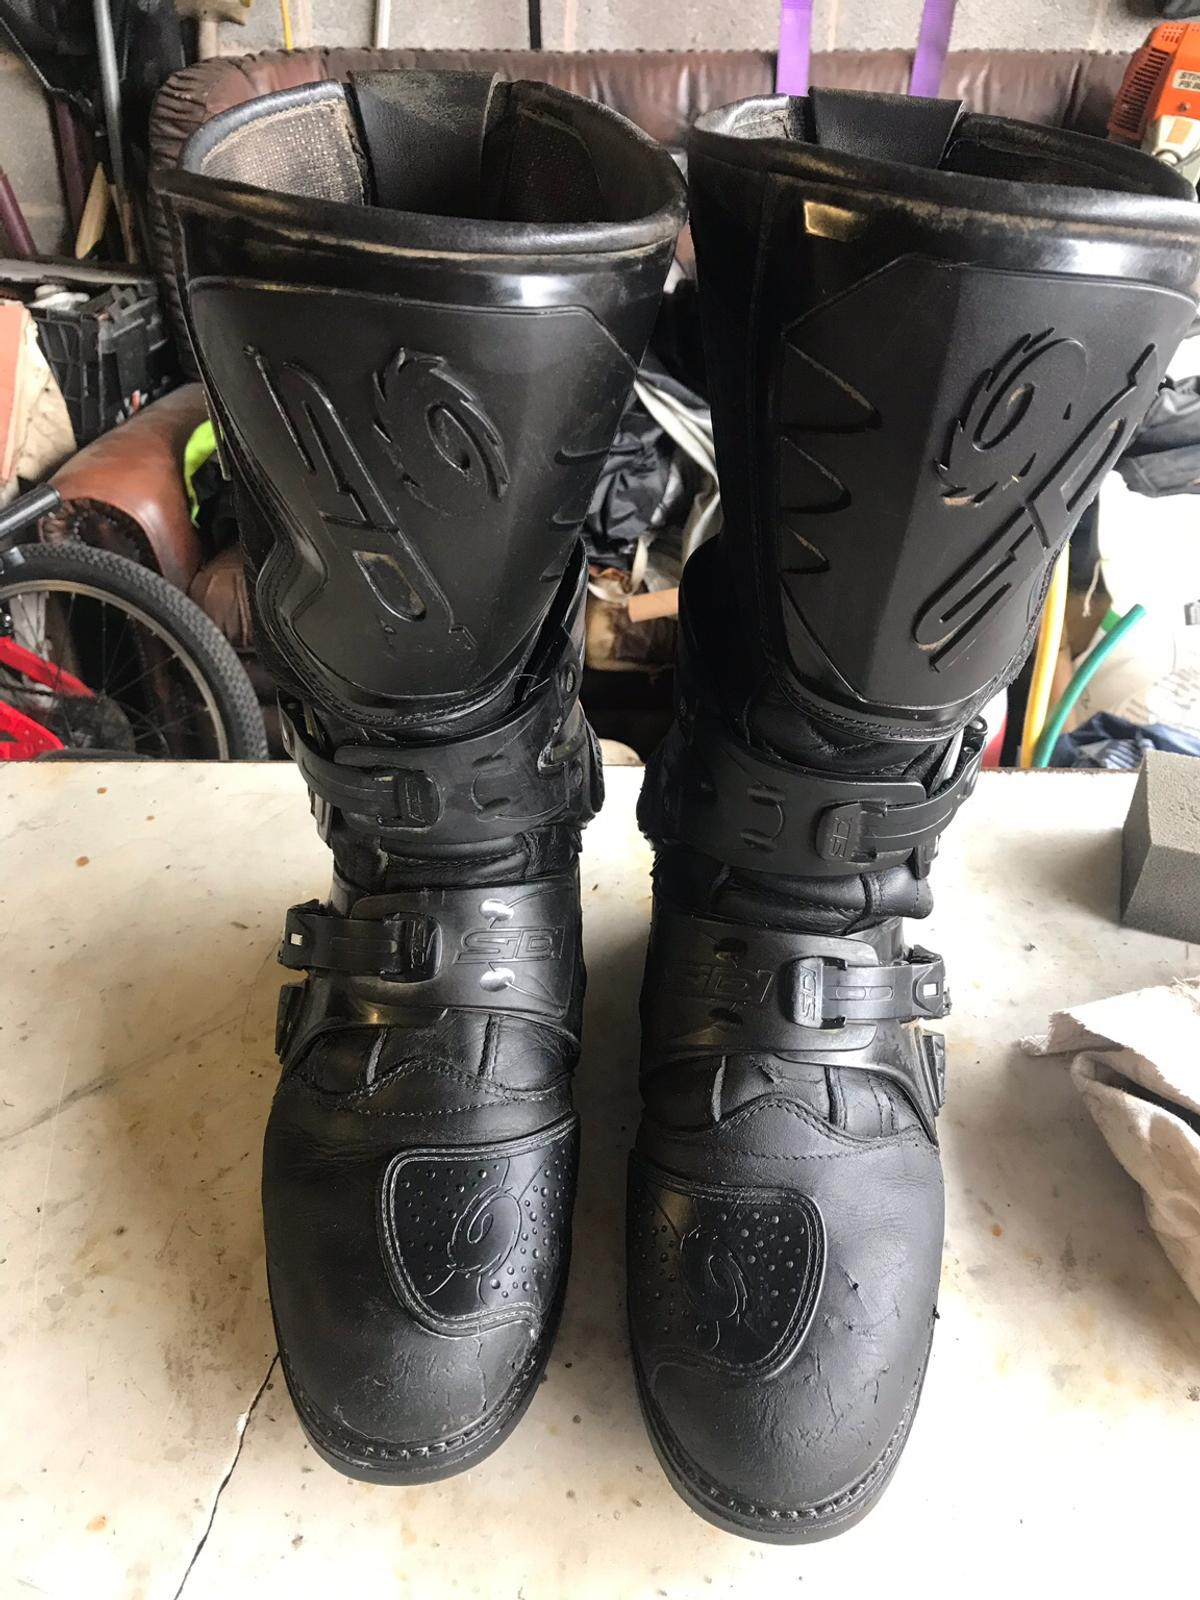 SIDI Adventure motorbike boots in West Lancashire for £85 00